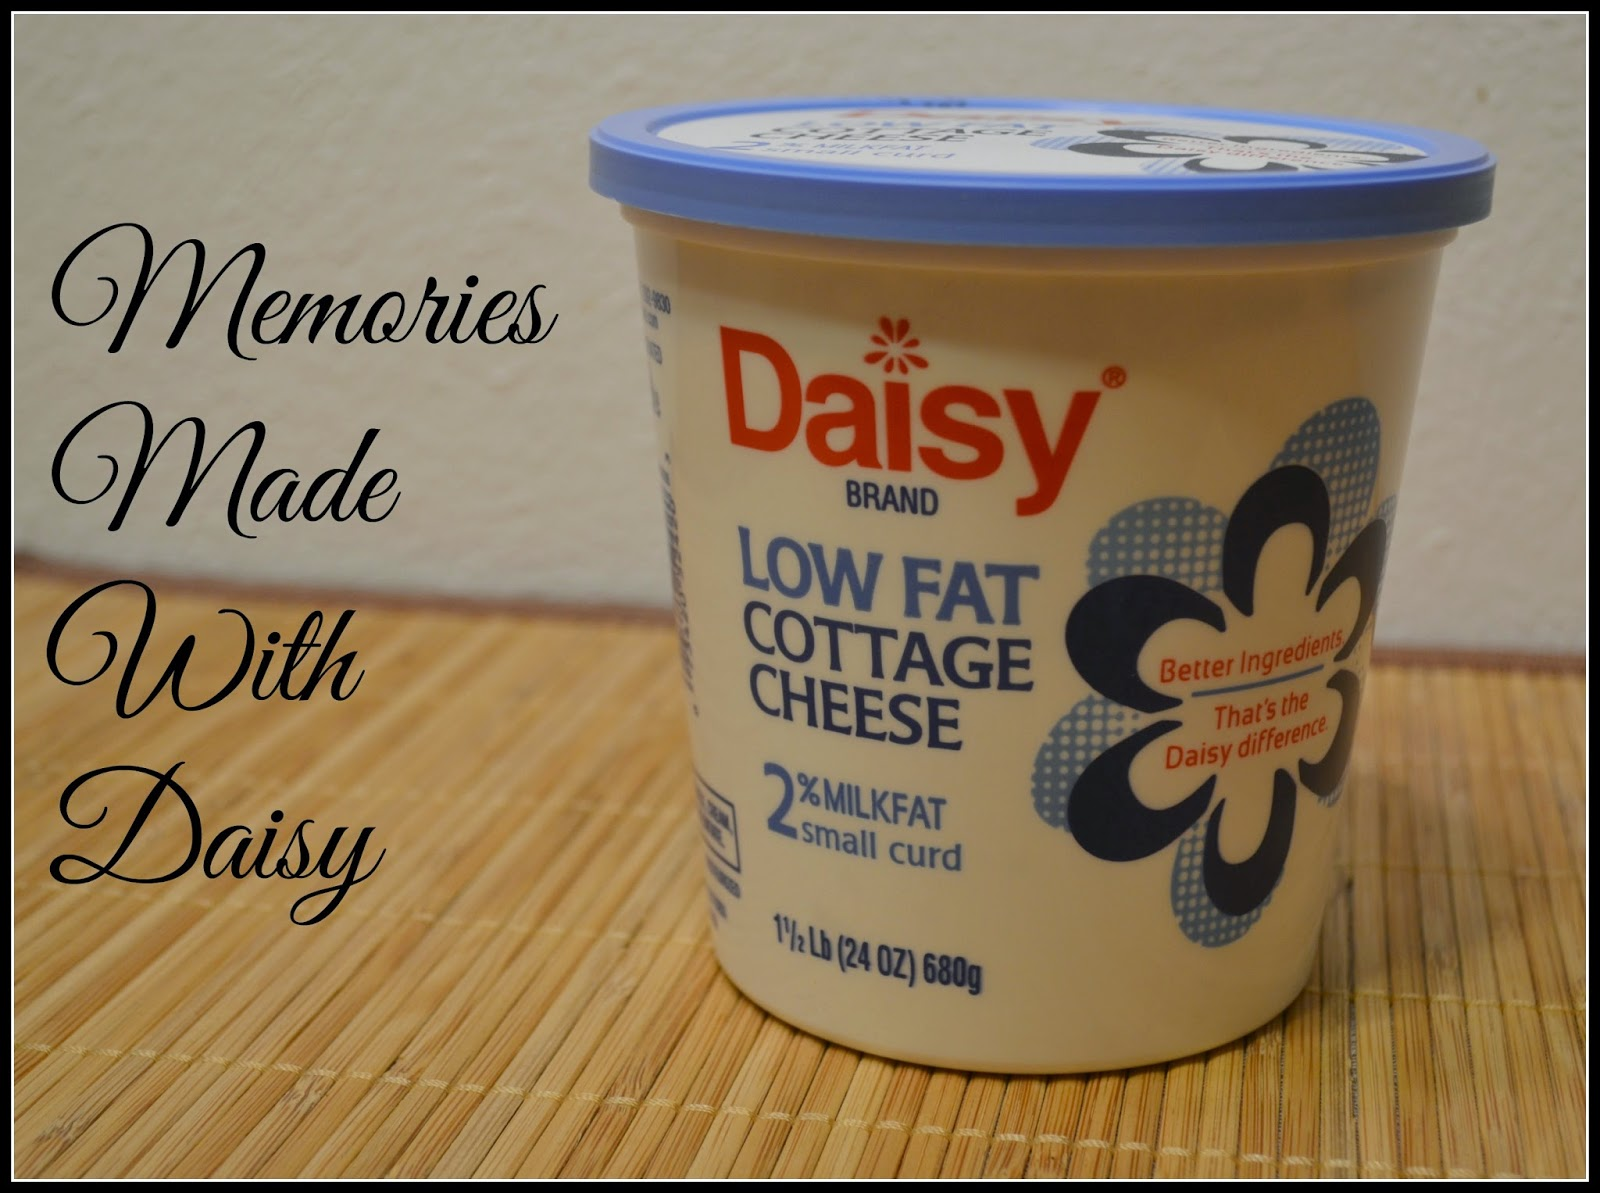 Daisy difference, Daisy Brand Cottage Cheese, Cottage Cheese pairings, Healthy Cottage Cheese, Cottage cheese snacks, Cottage cheese recipes